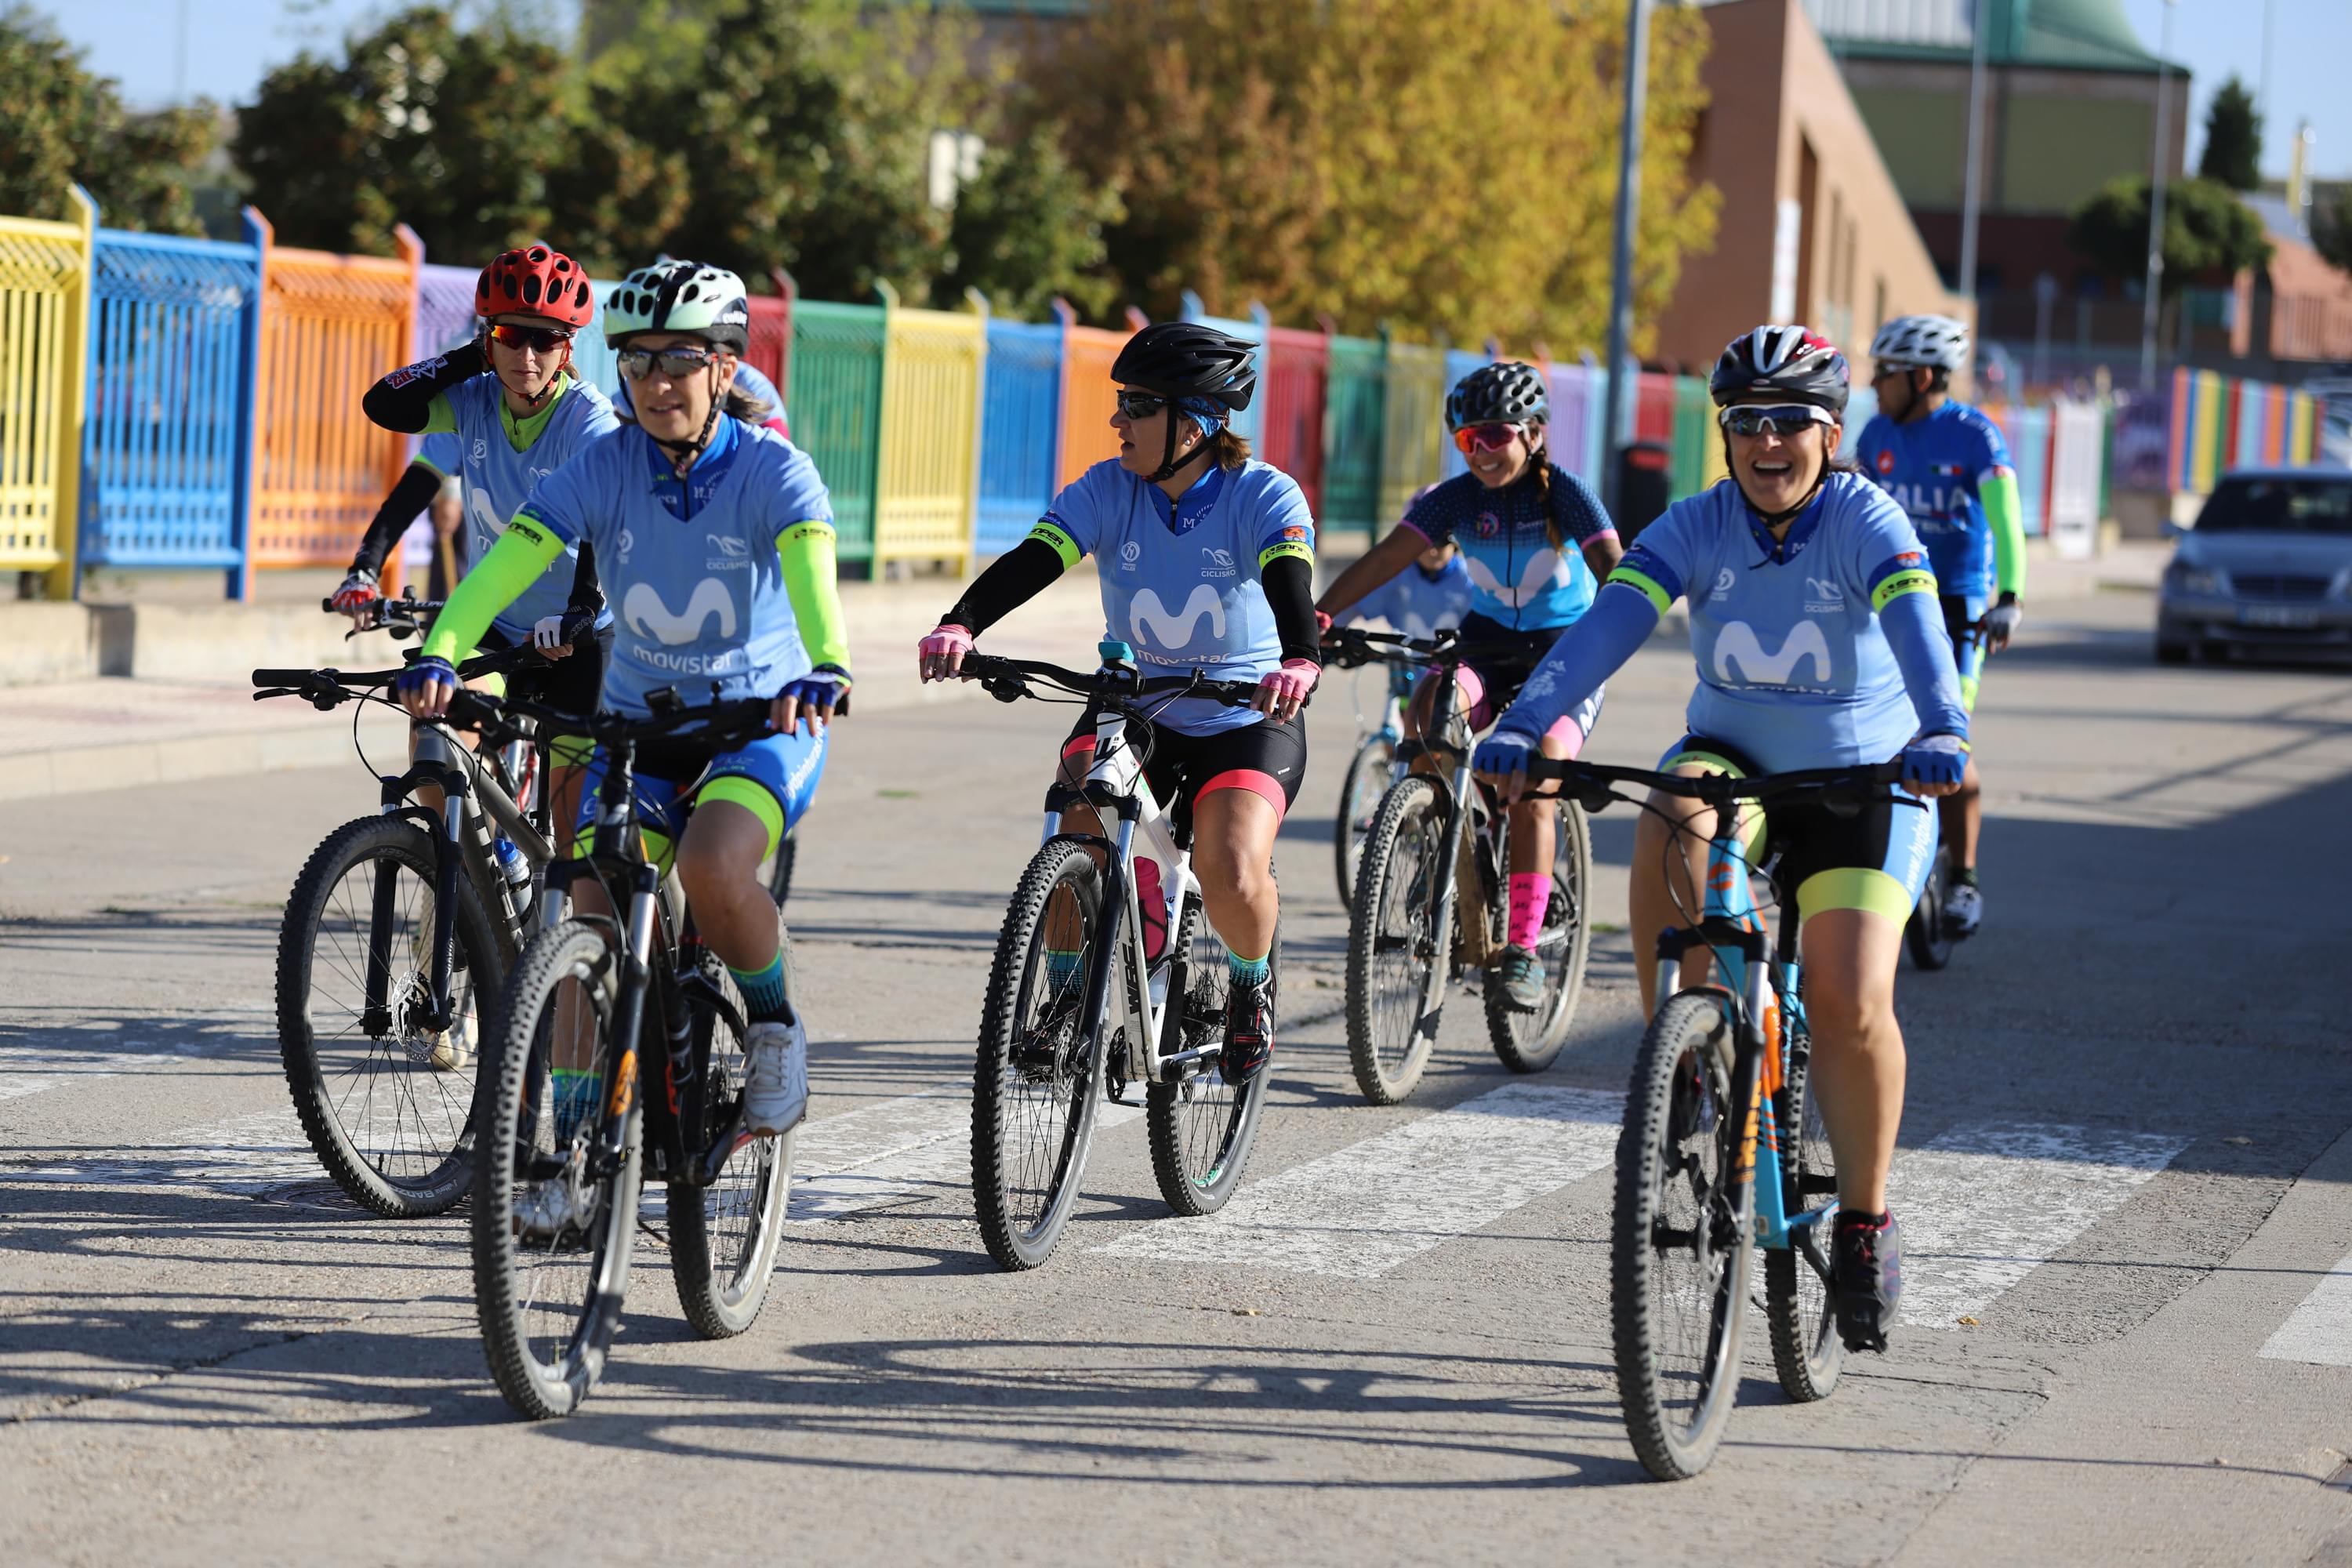 Women In Bike inunda de ciclismo femenino Carbajosa de la Sagrada